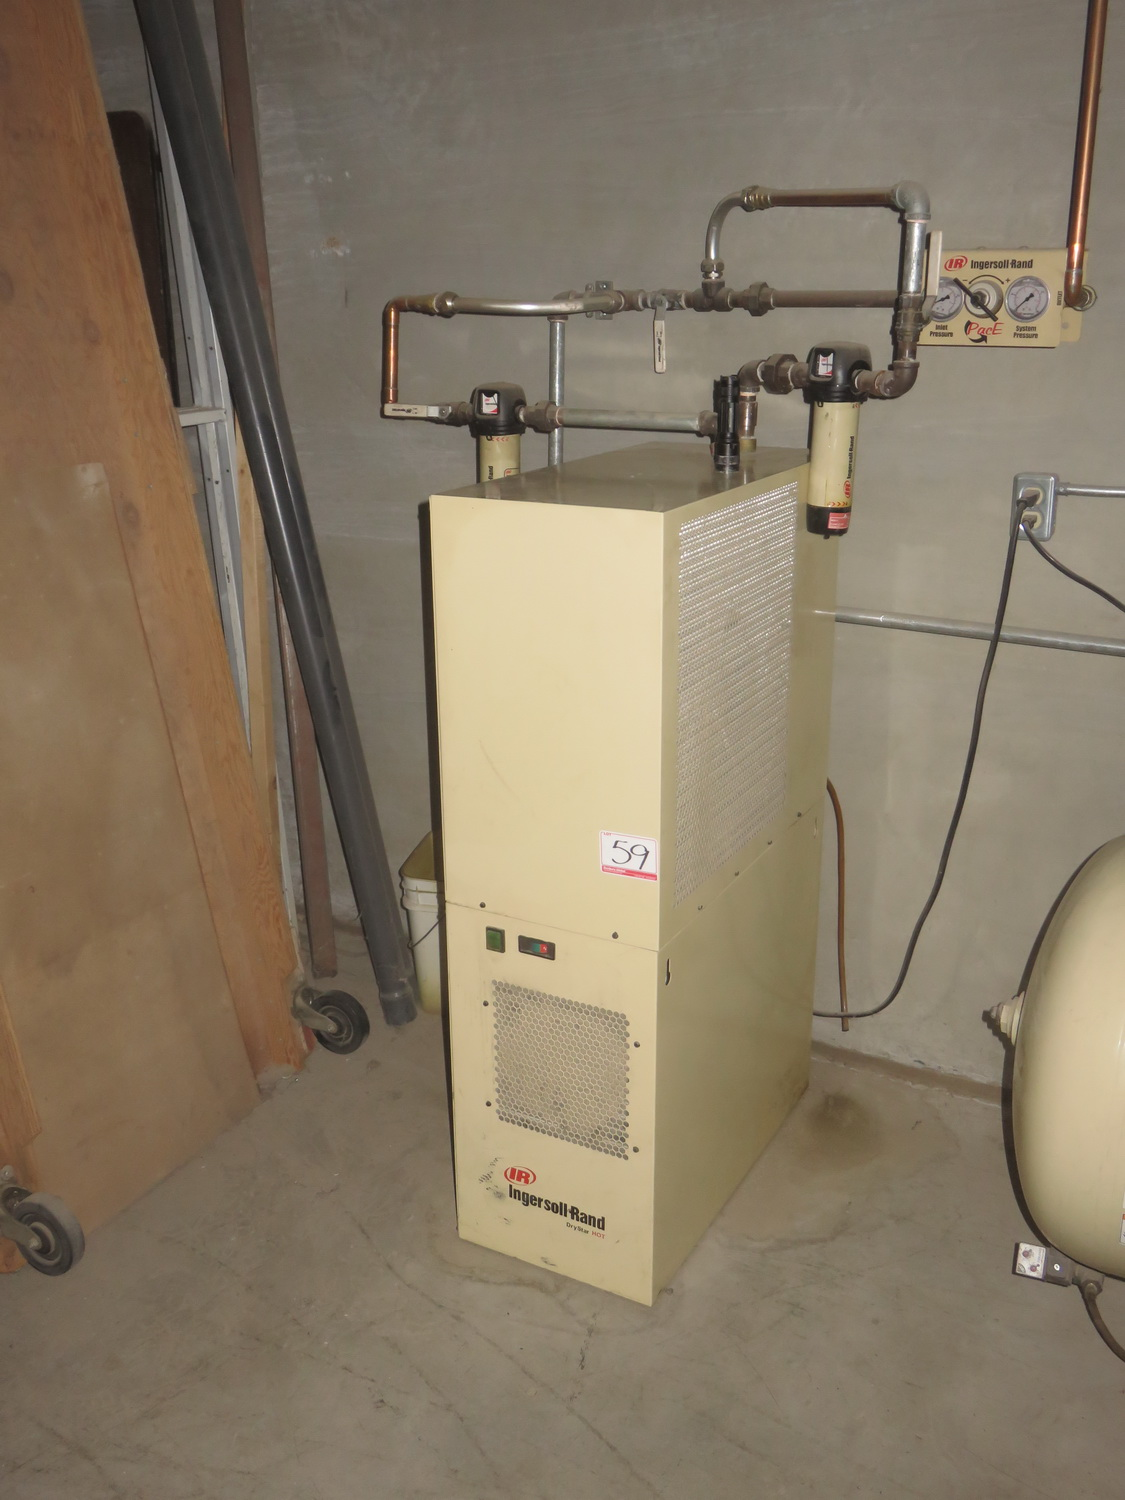 INGERSOLL RAND MODEL D550-H 115/1/60 REFRIGERATED AIR DRYER W/ FILTERS, S/N 2600920003